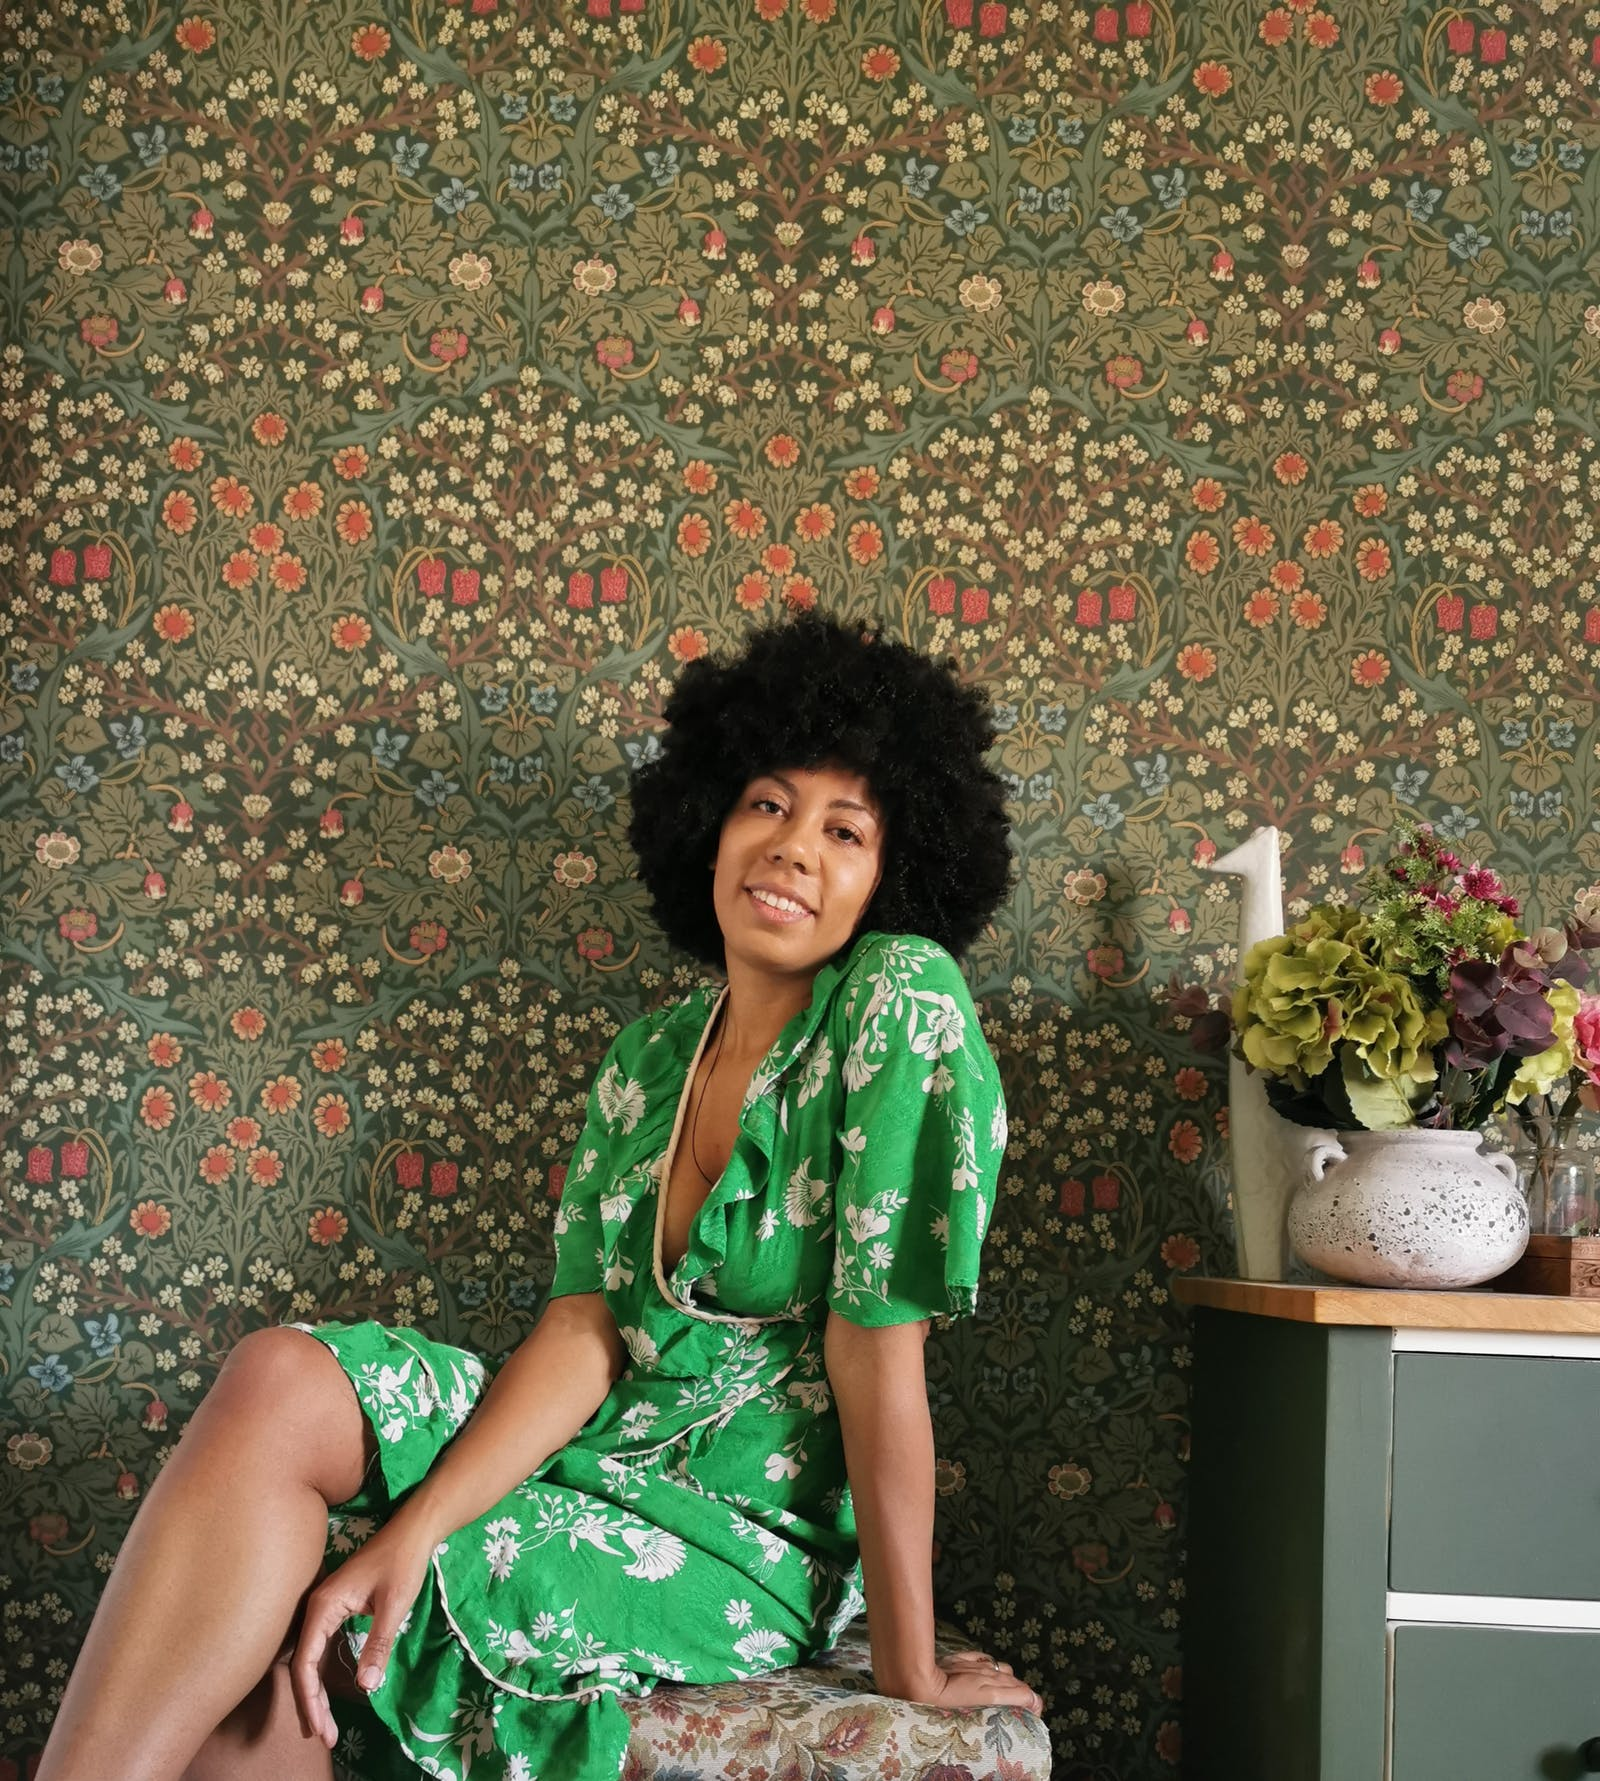 Woman in a floral green dress sitting in front of a grass green floral patterned wallpaper